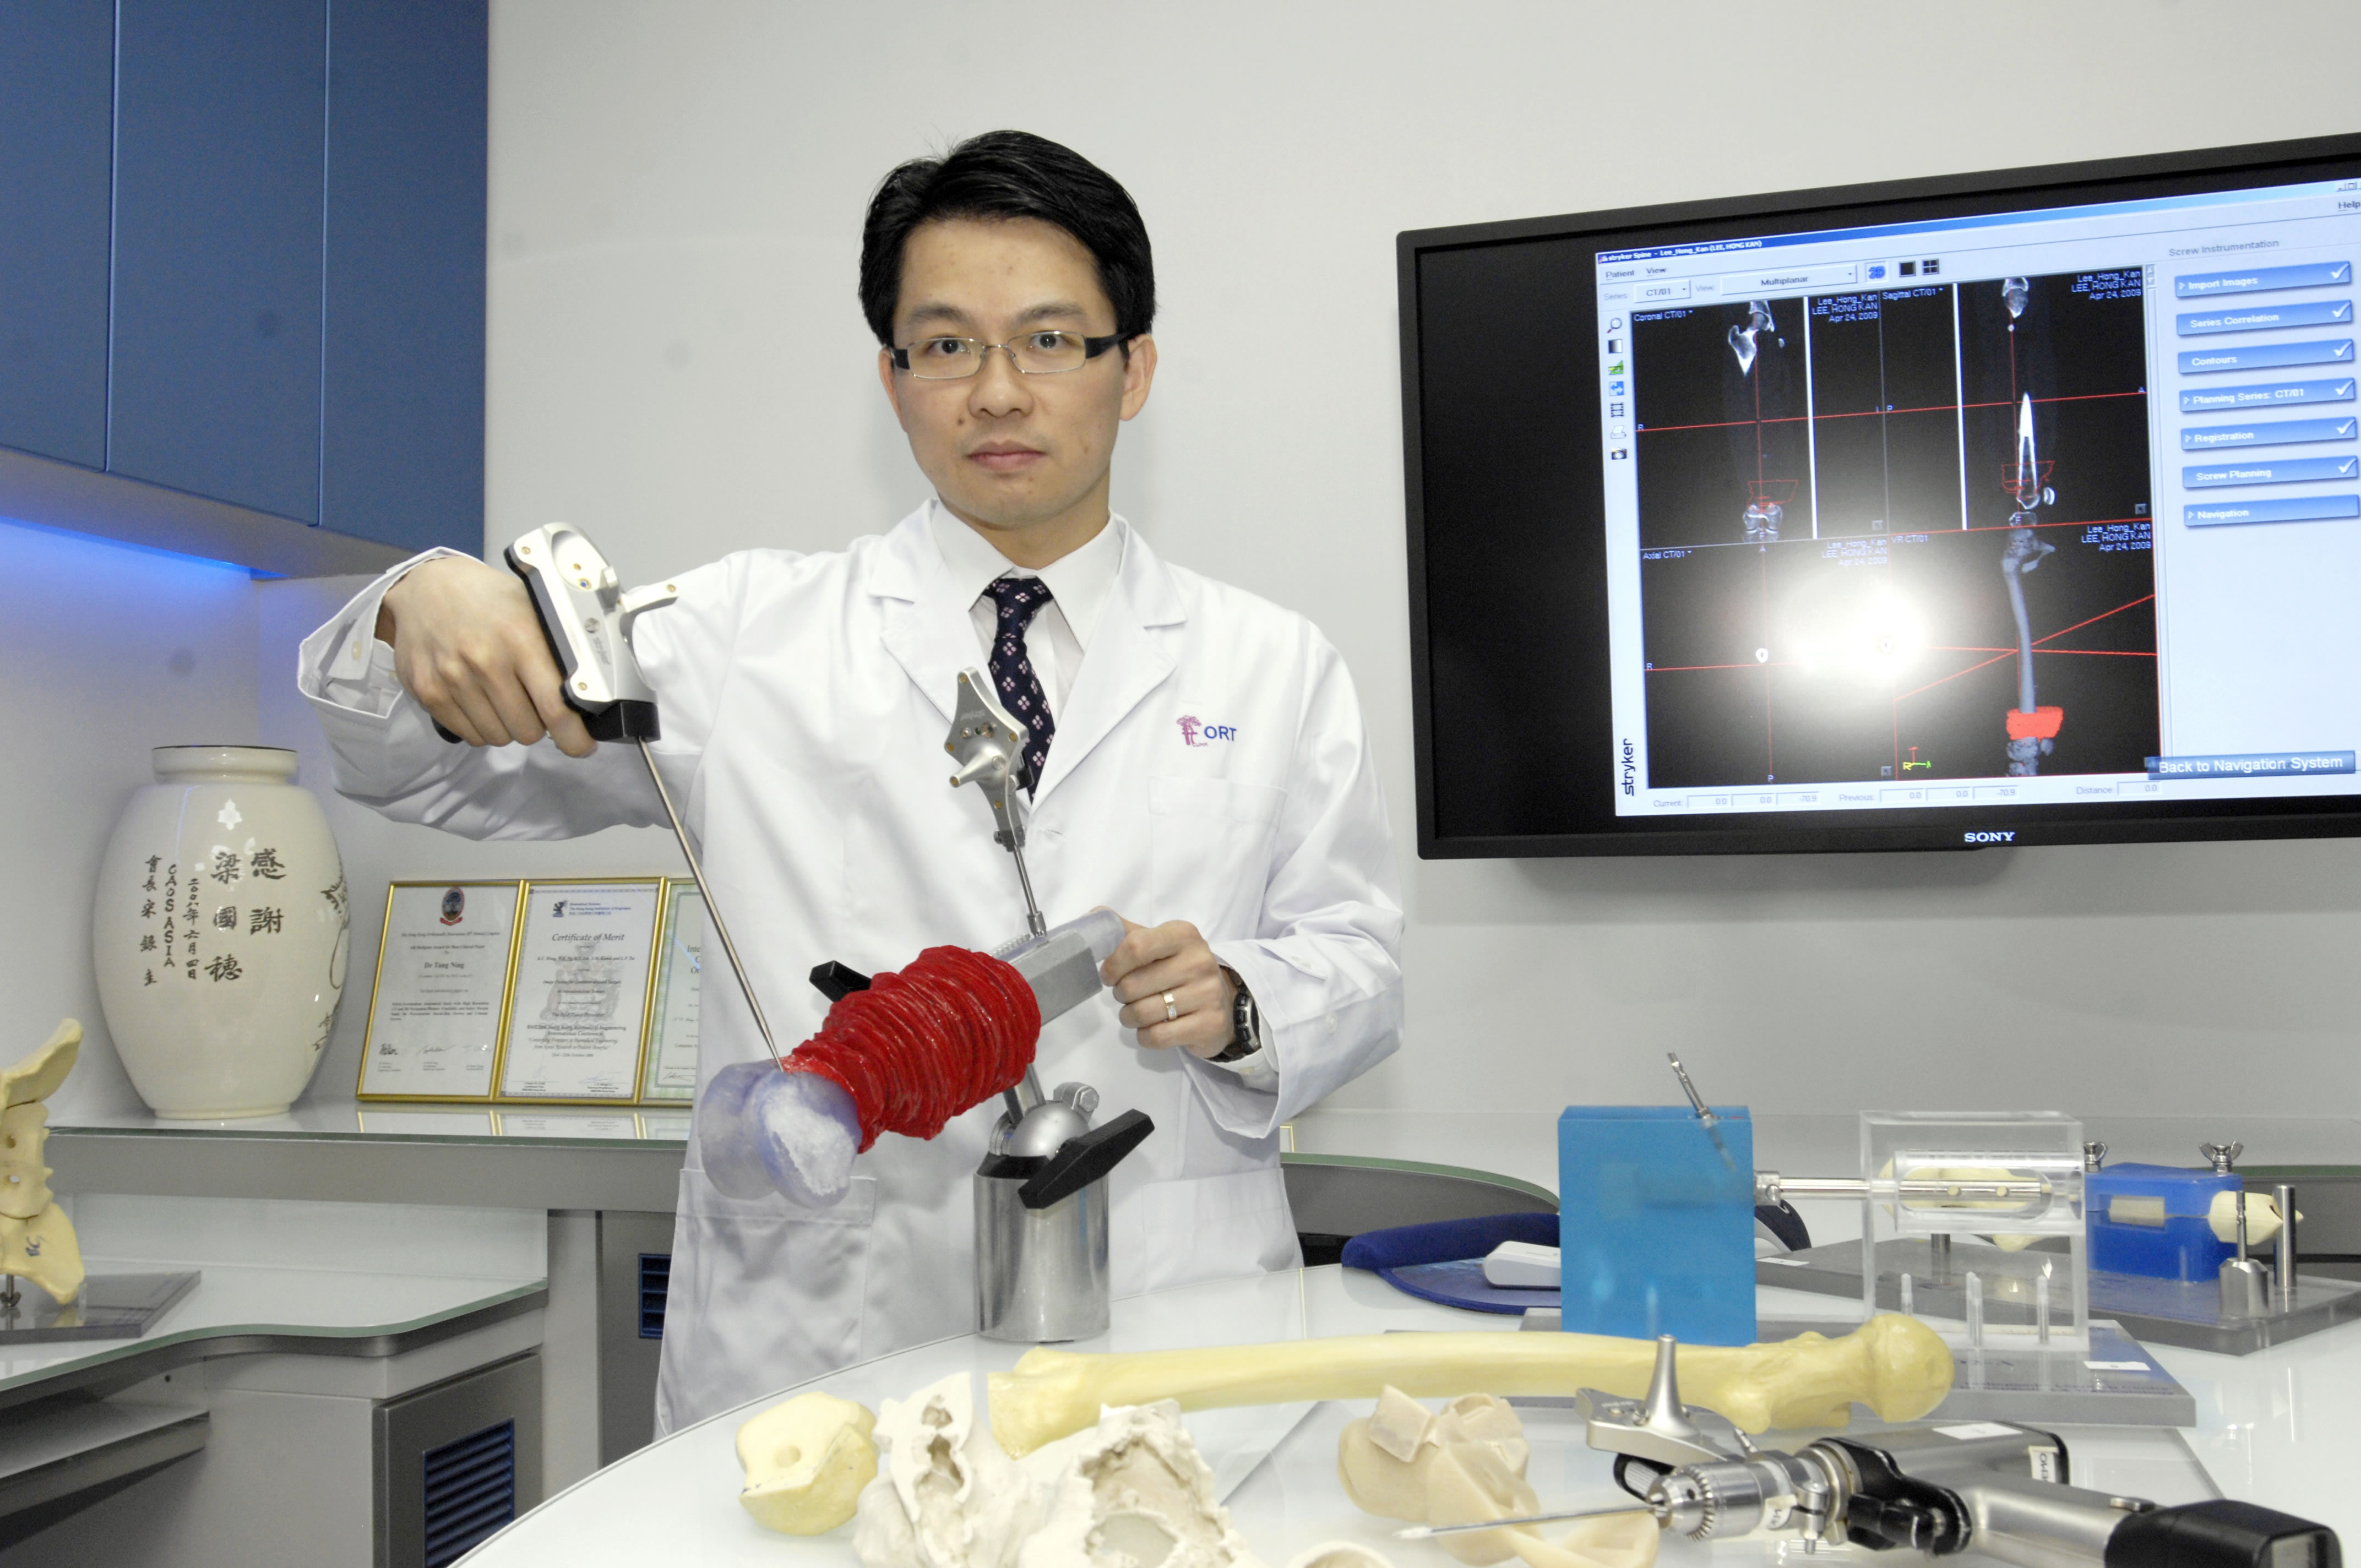 Dr. Kwok Chuen WONG, Clinical Assistant Professor (honorary), Department of Orthopaedics and Traumatology, CUHK demonstrating the Computer Assisted Orthopaedics system